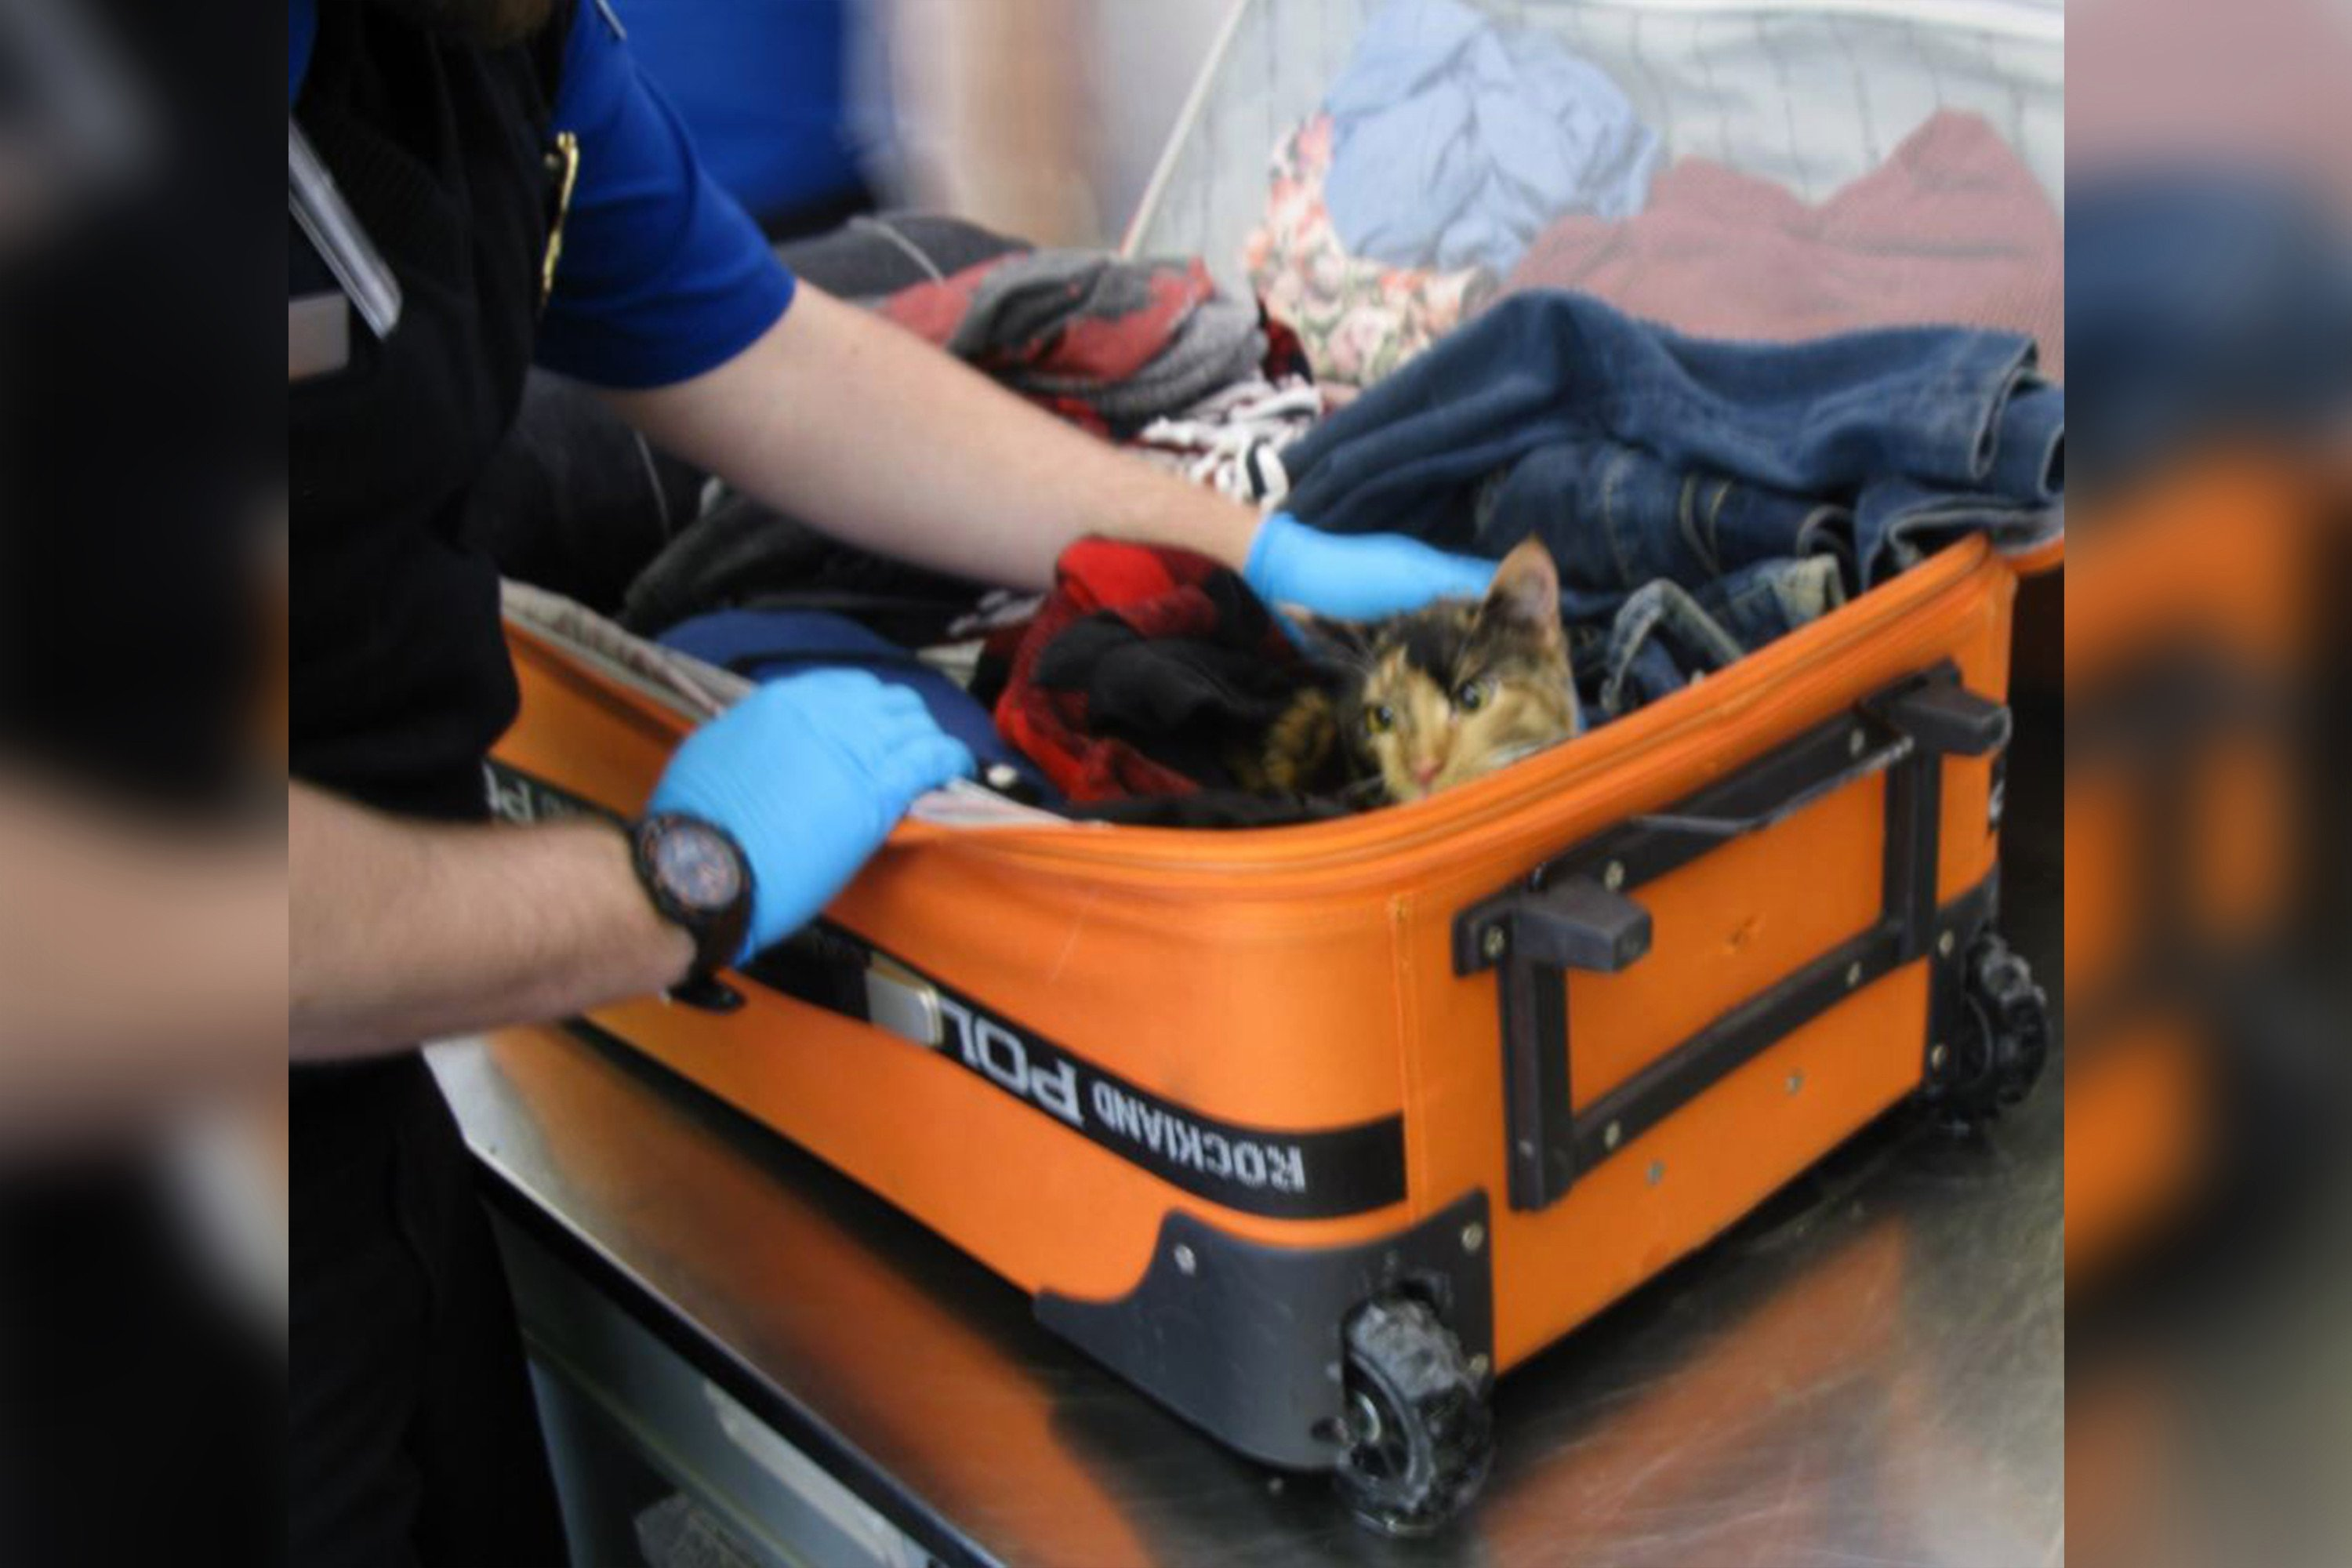 Couple charged with animal cruelty after cat found in luggage